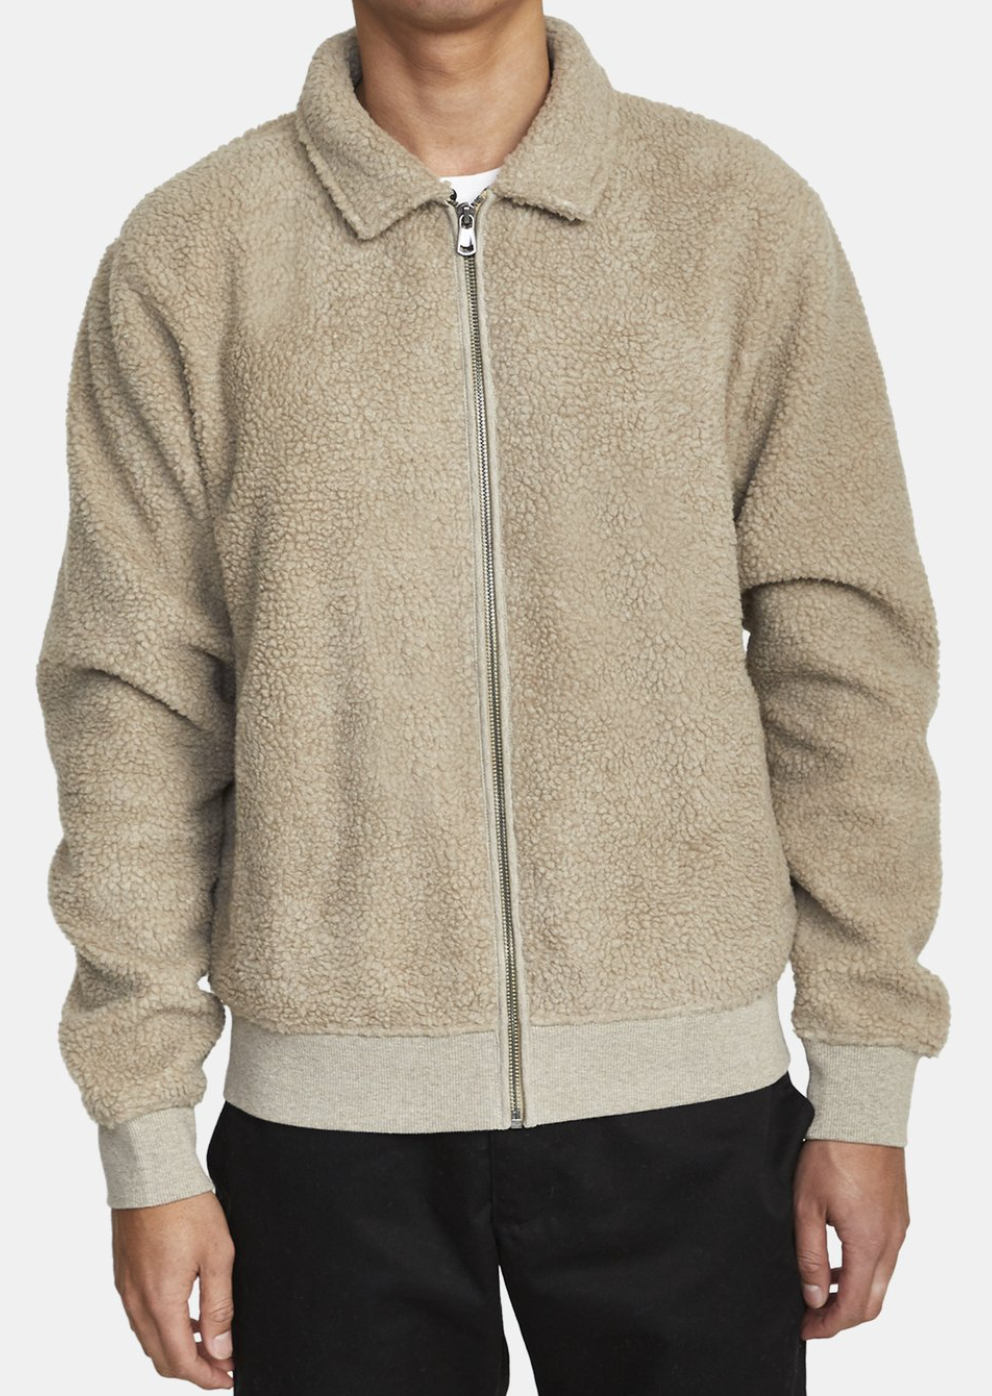 Erie Zip Jacket